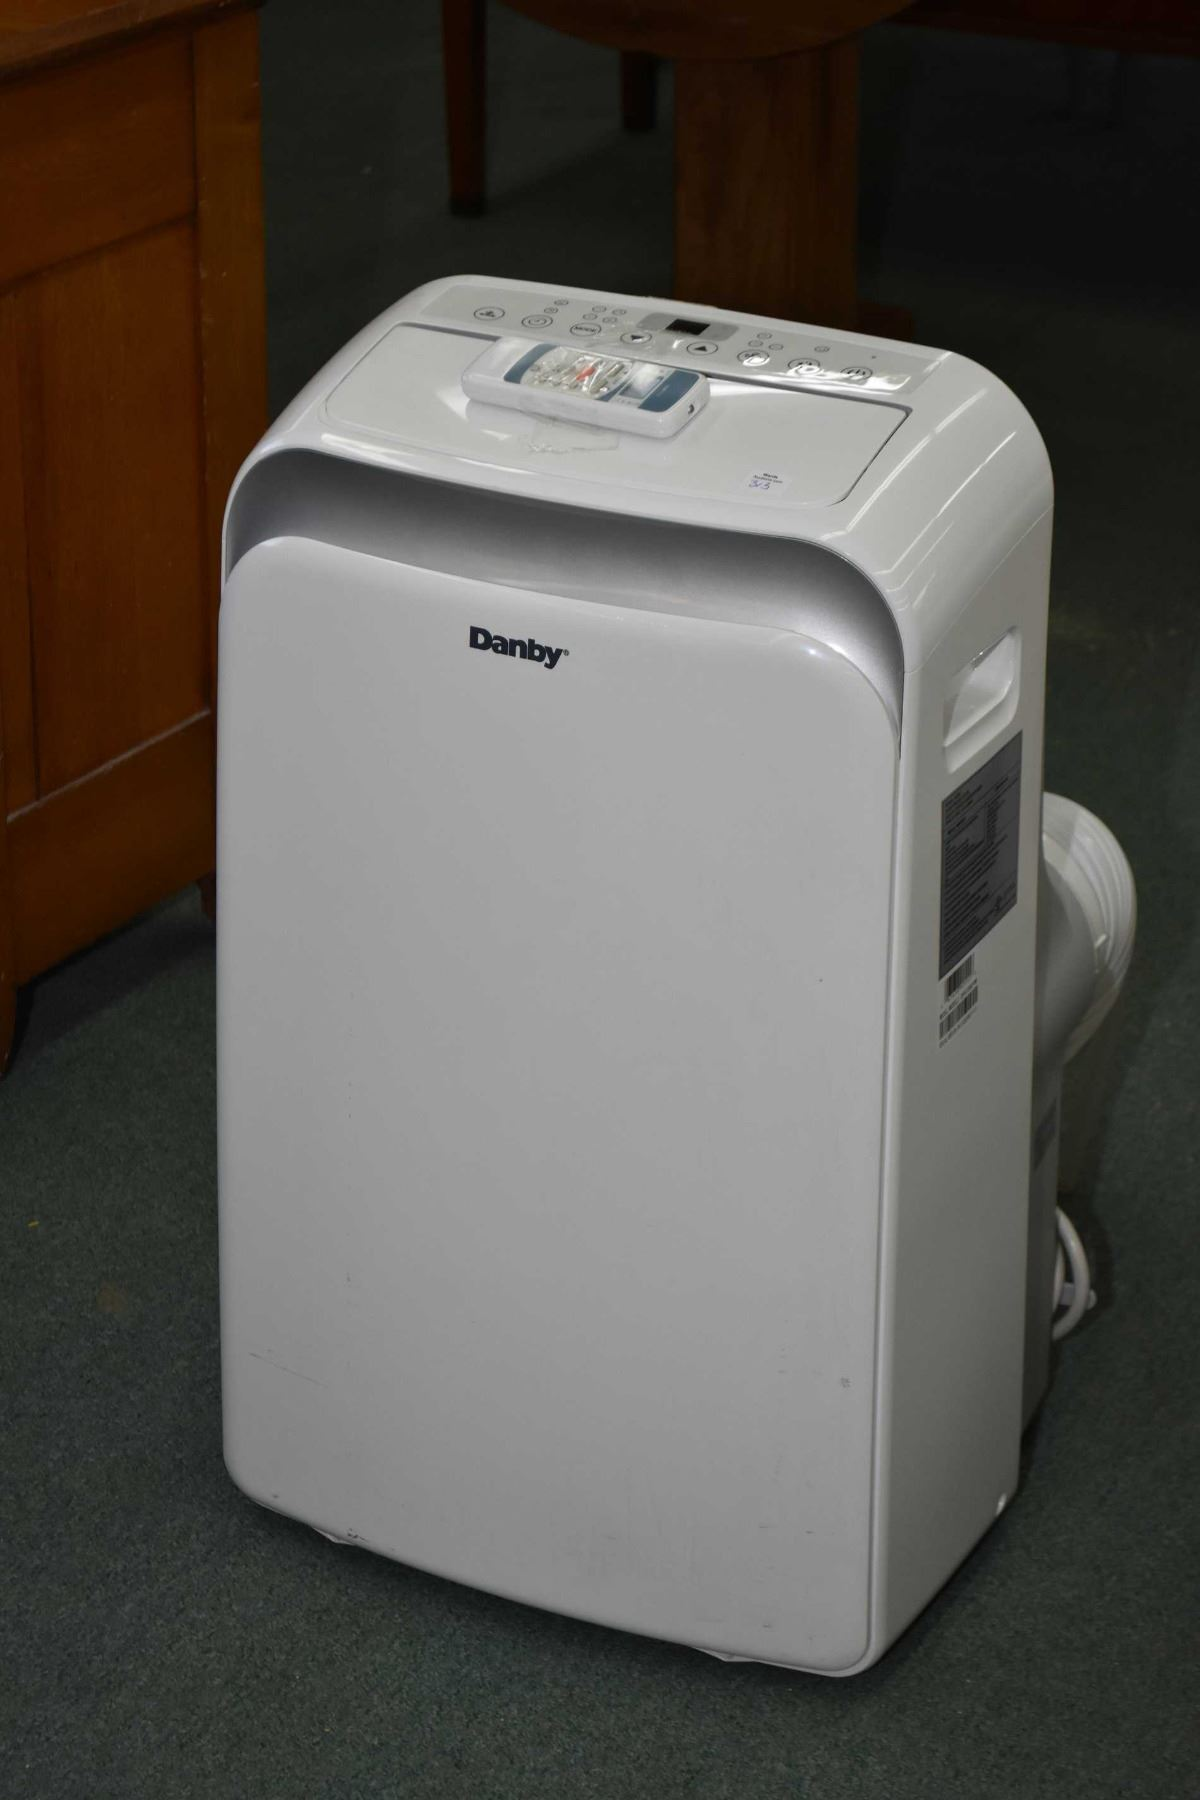 Danby portal air conditioning unit with remote, exhaust